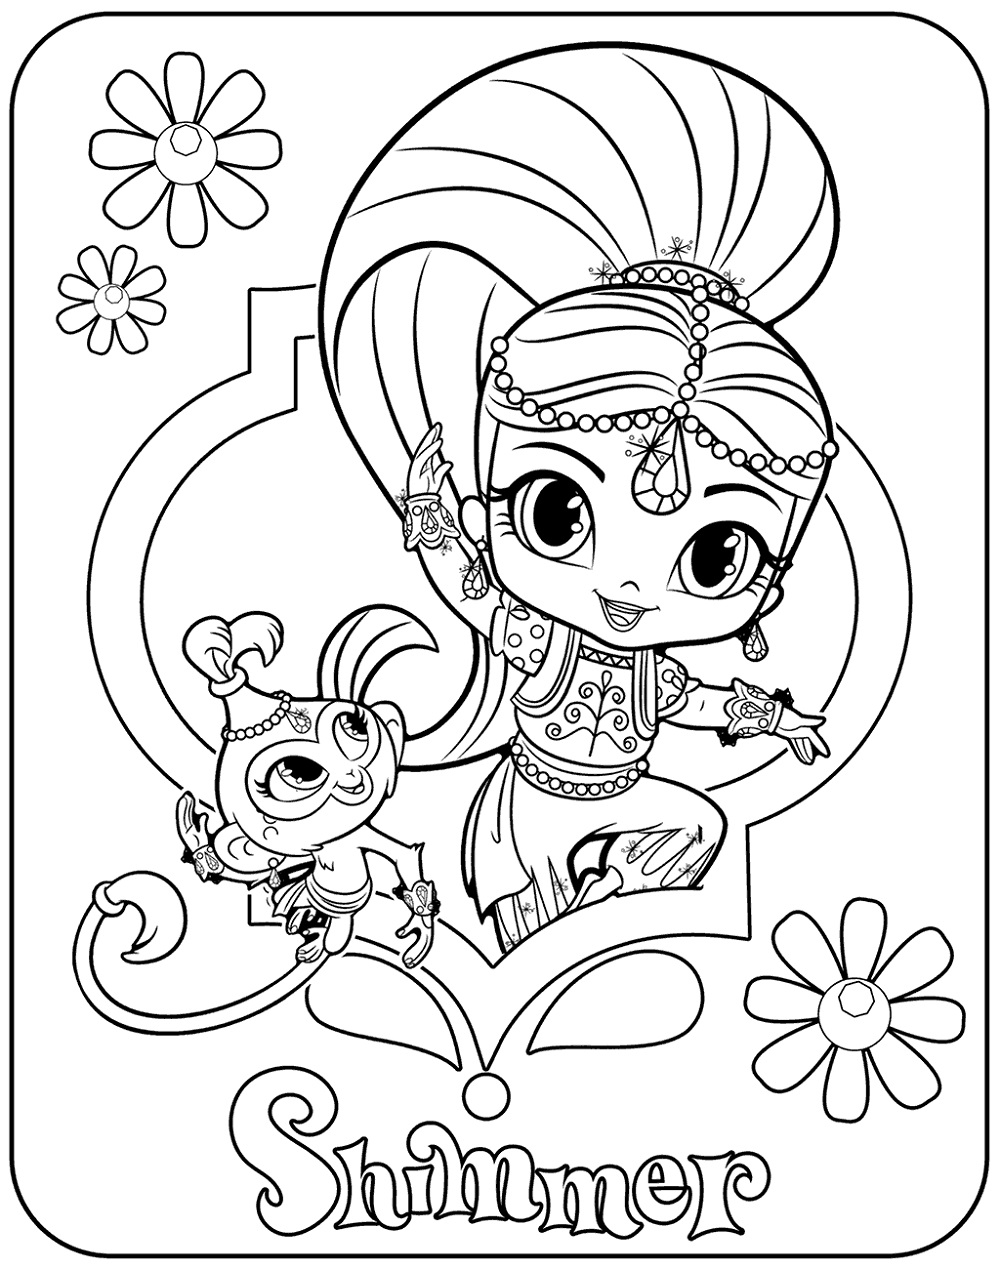 Free Printable Shimmer And Shine Coloring Pages 101 Coloring